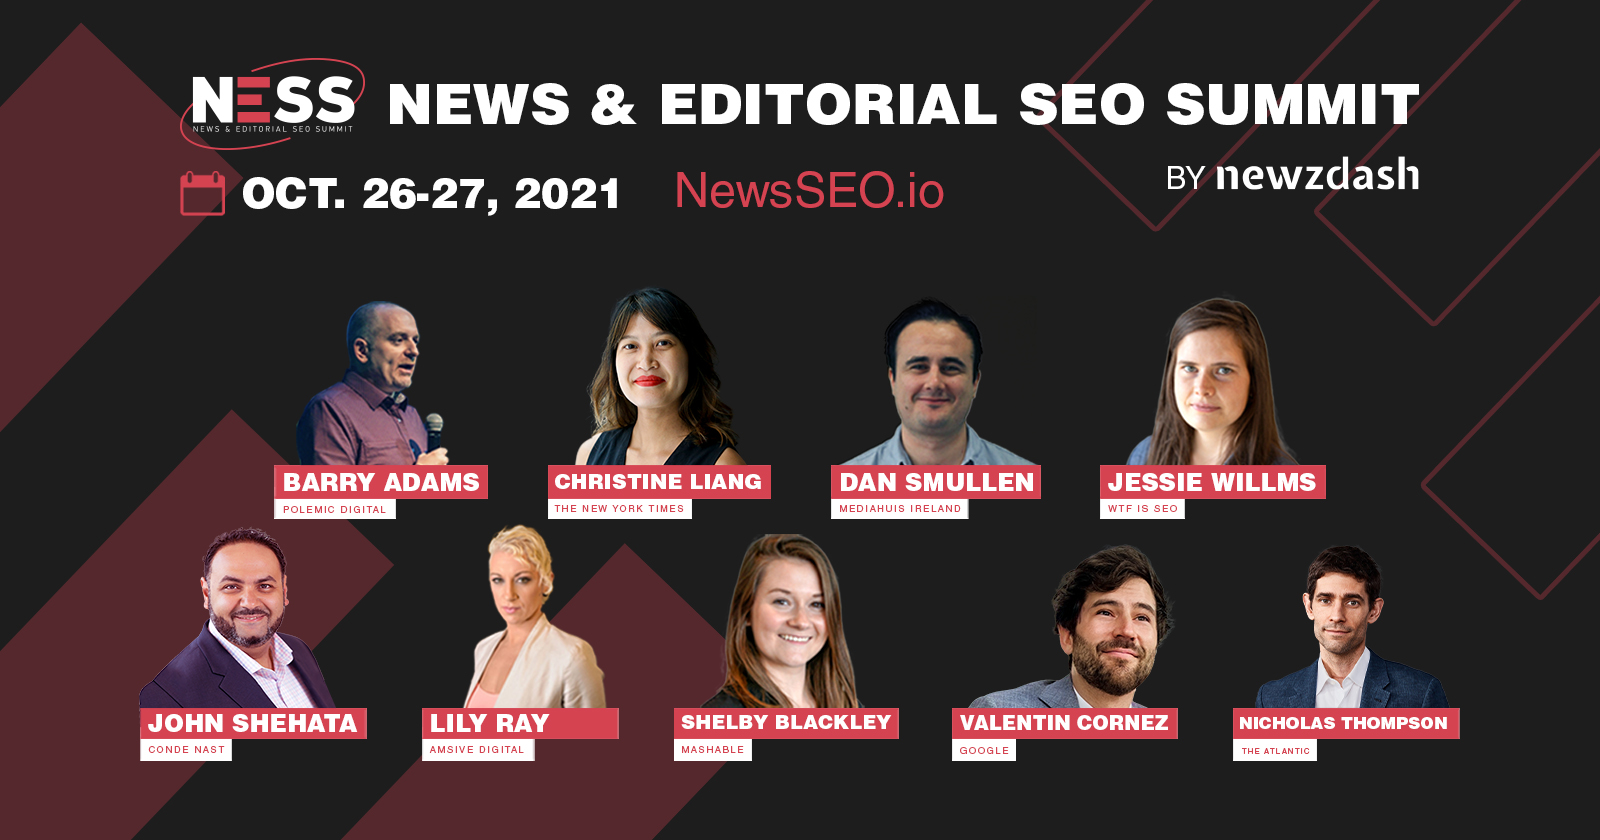 News Publishers, This Is The Event You've Been Waiting For! - Search Engine Journal